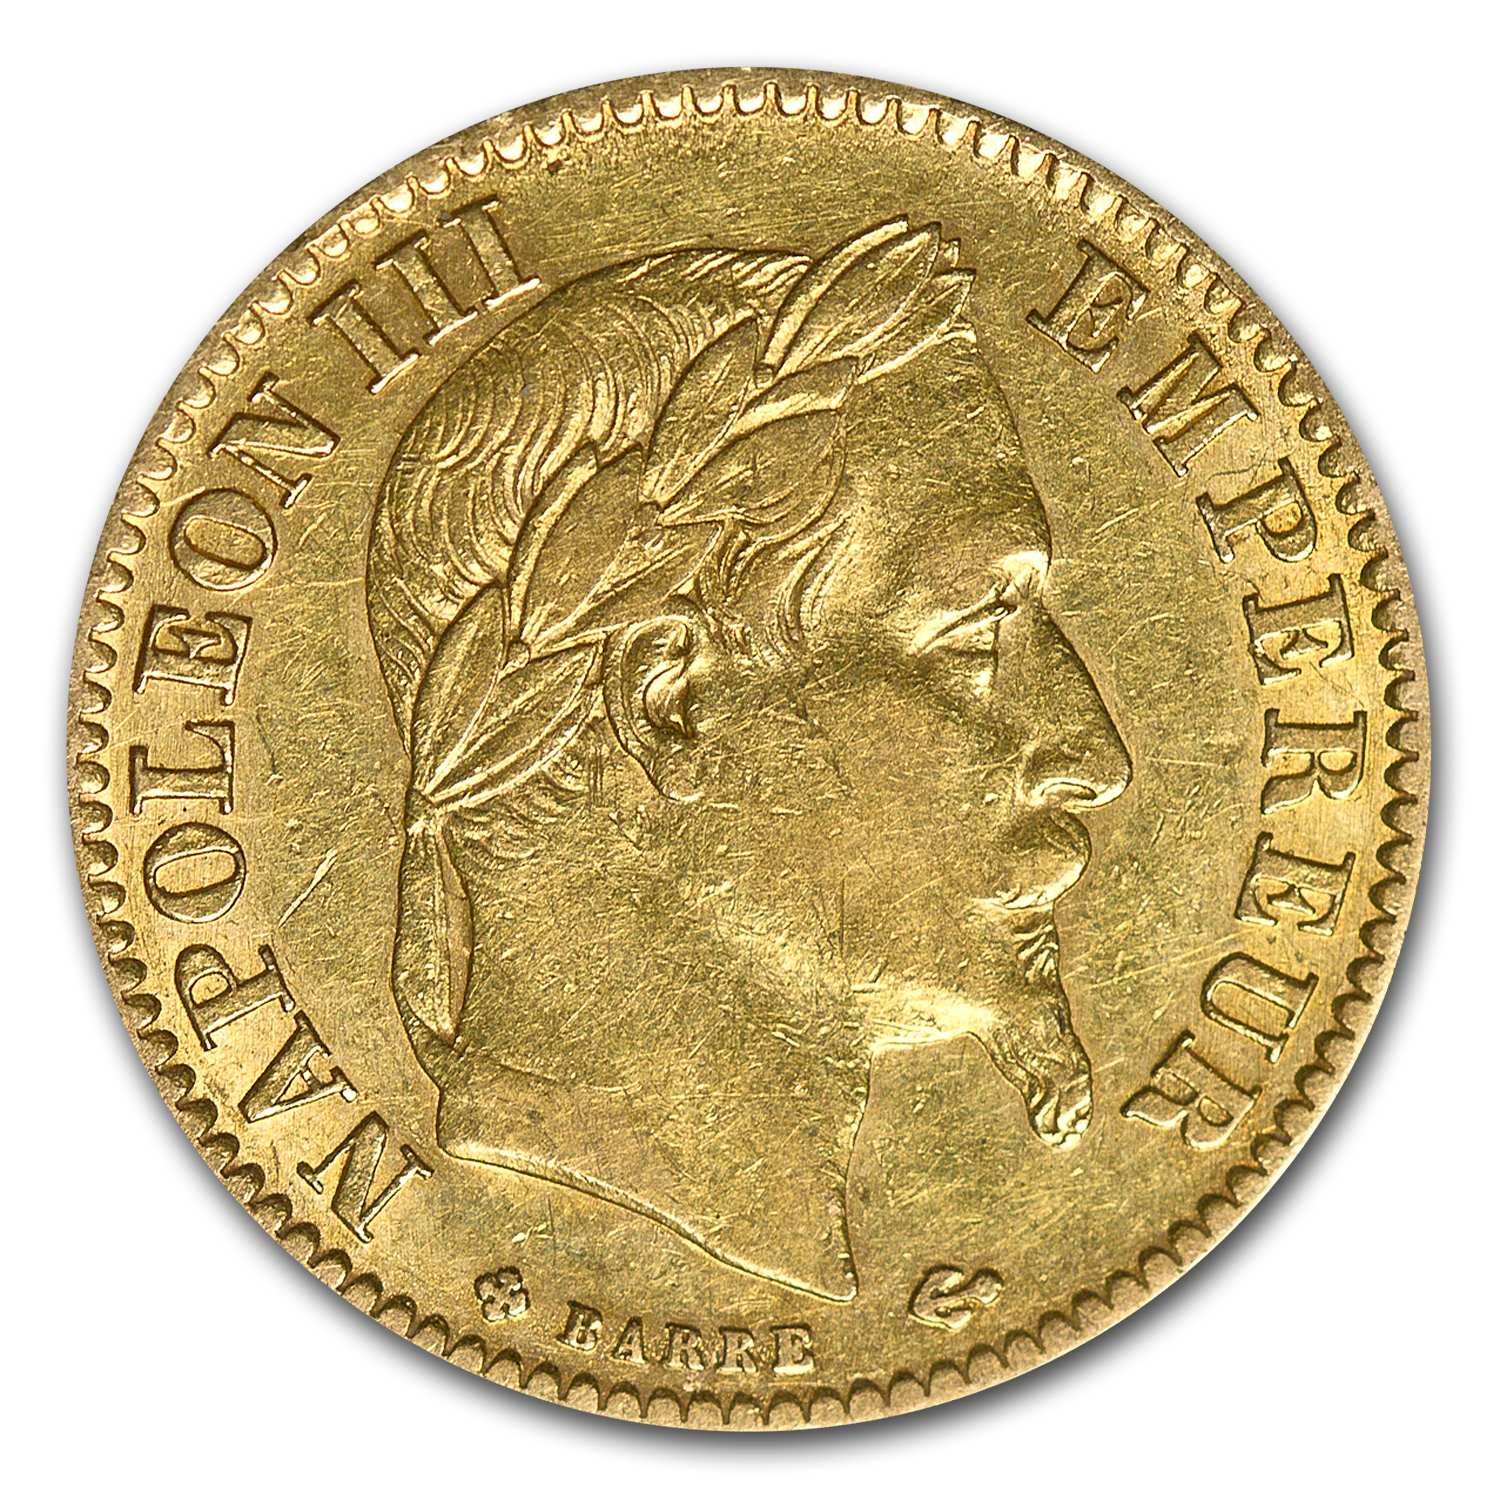 France Gold 10 Francs (Napoleon III) (XF)